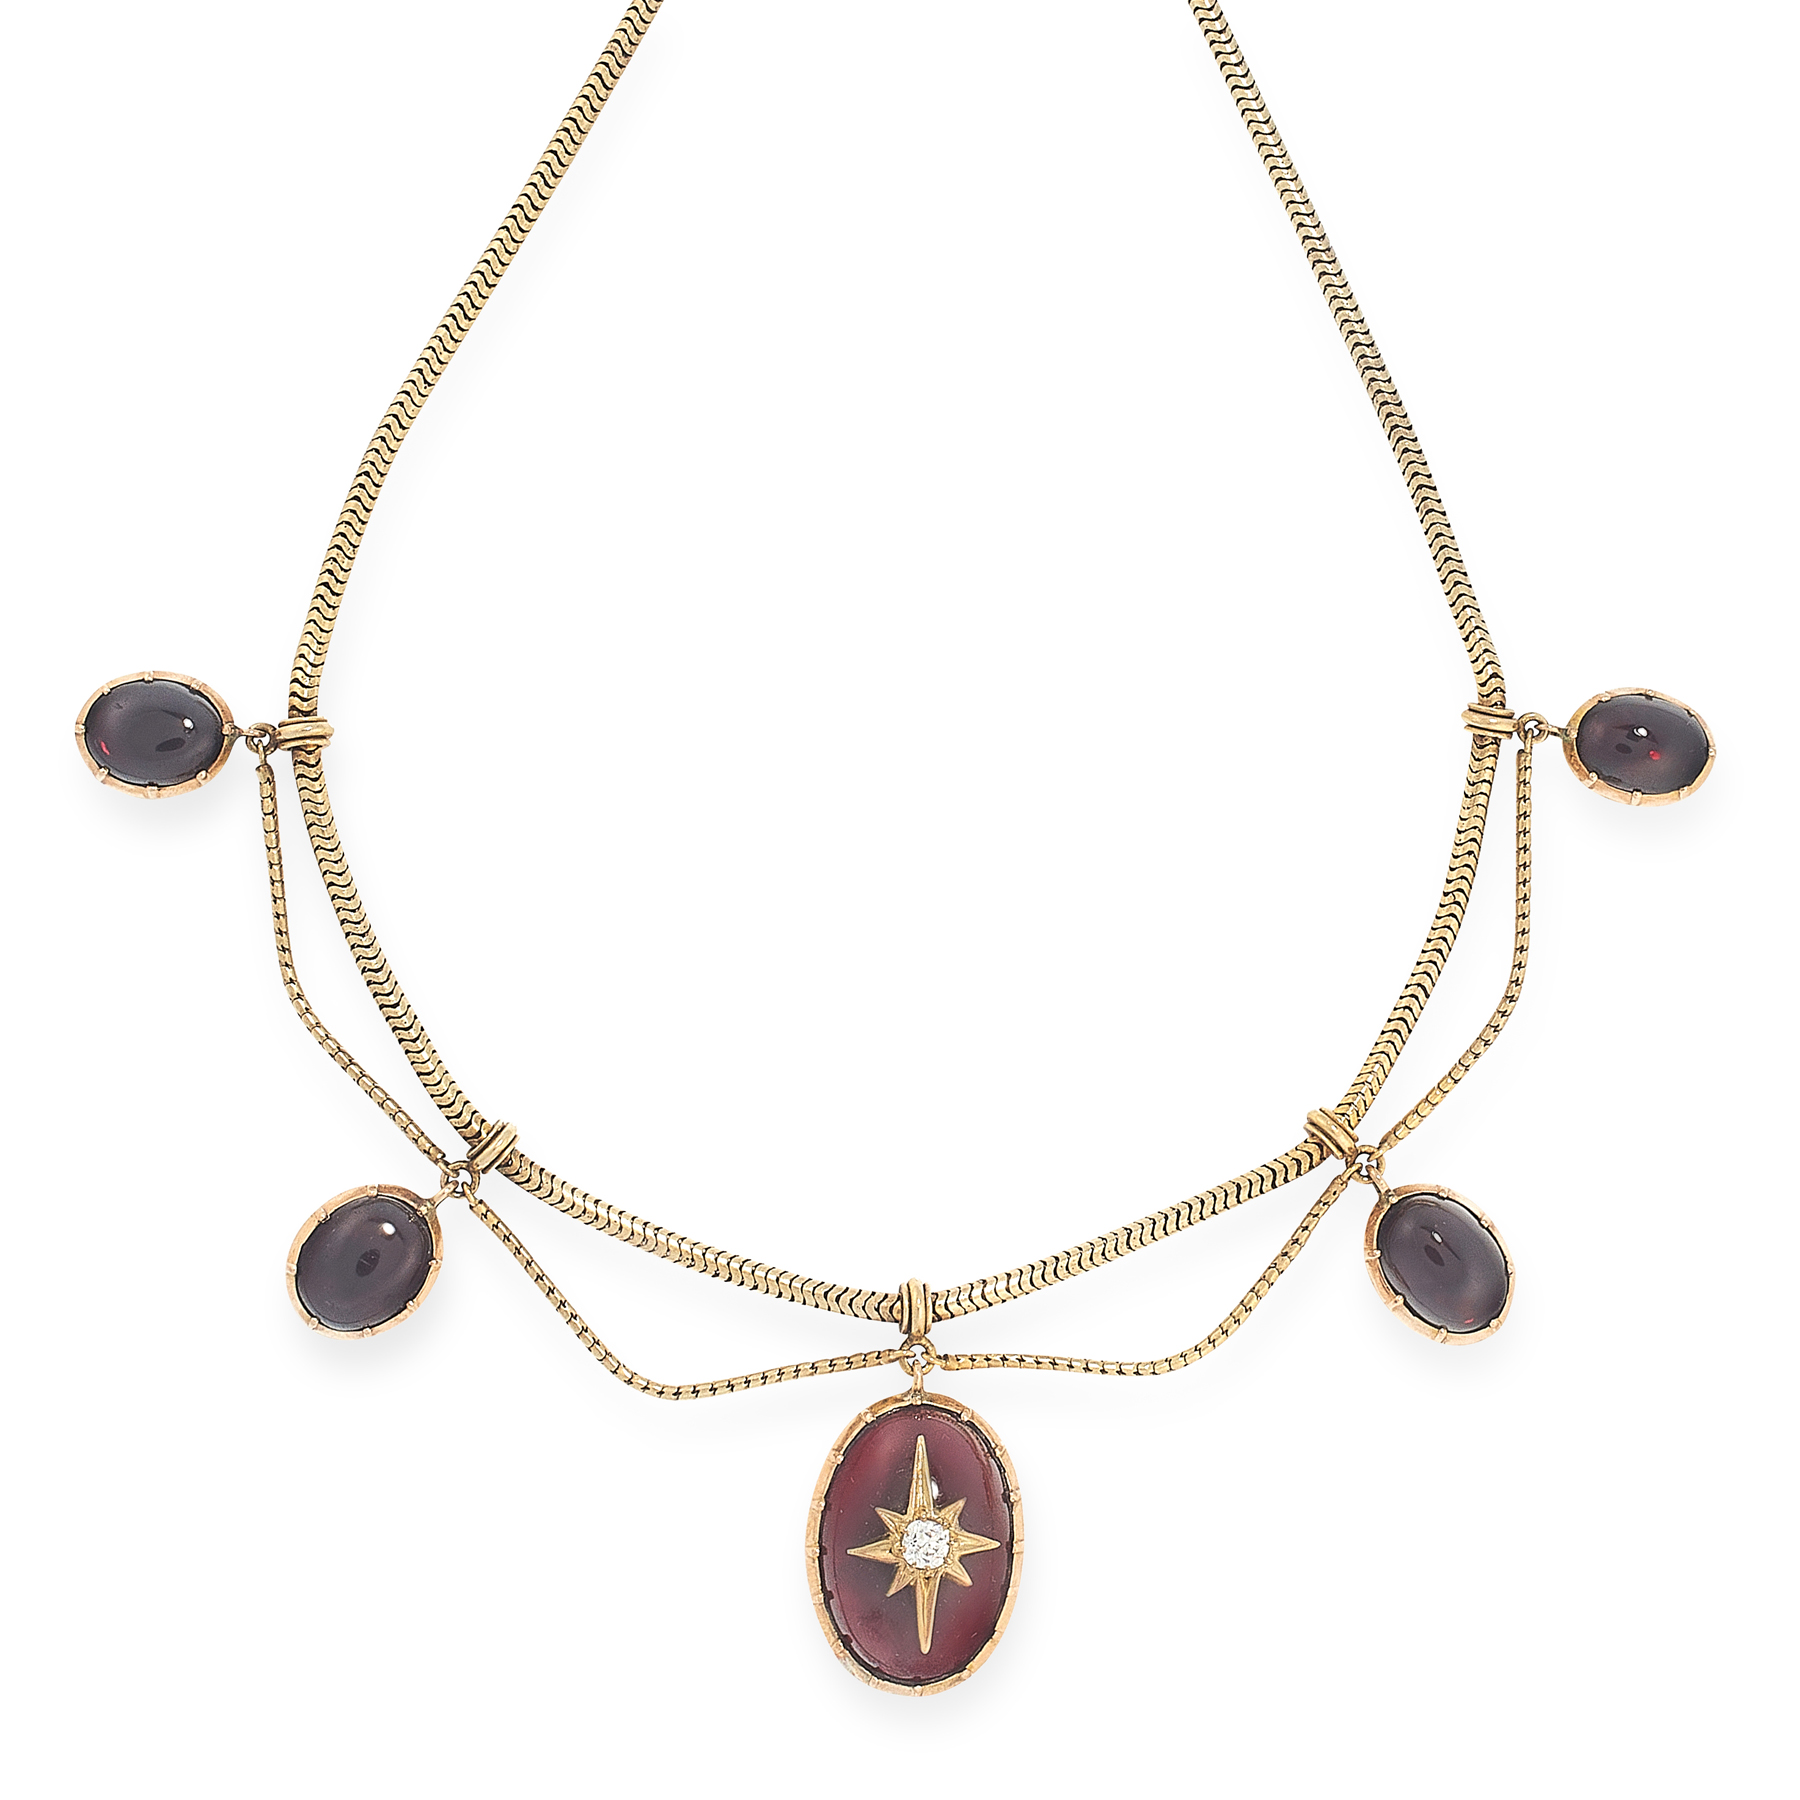 AN ANTIQUE GARNET AND DIAMOND NECKLACE in high carat yellow gold, the textured gold chain suspends